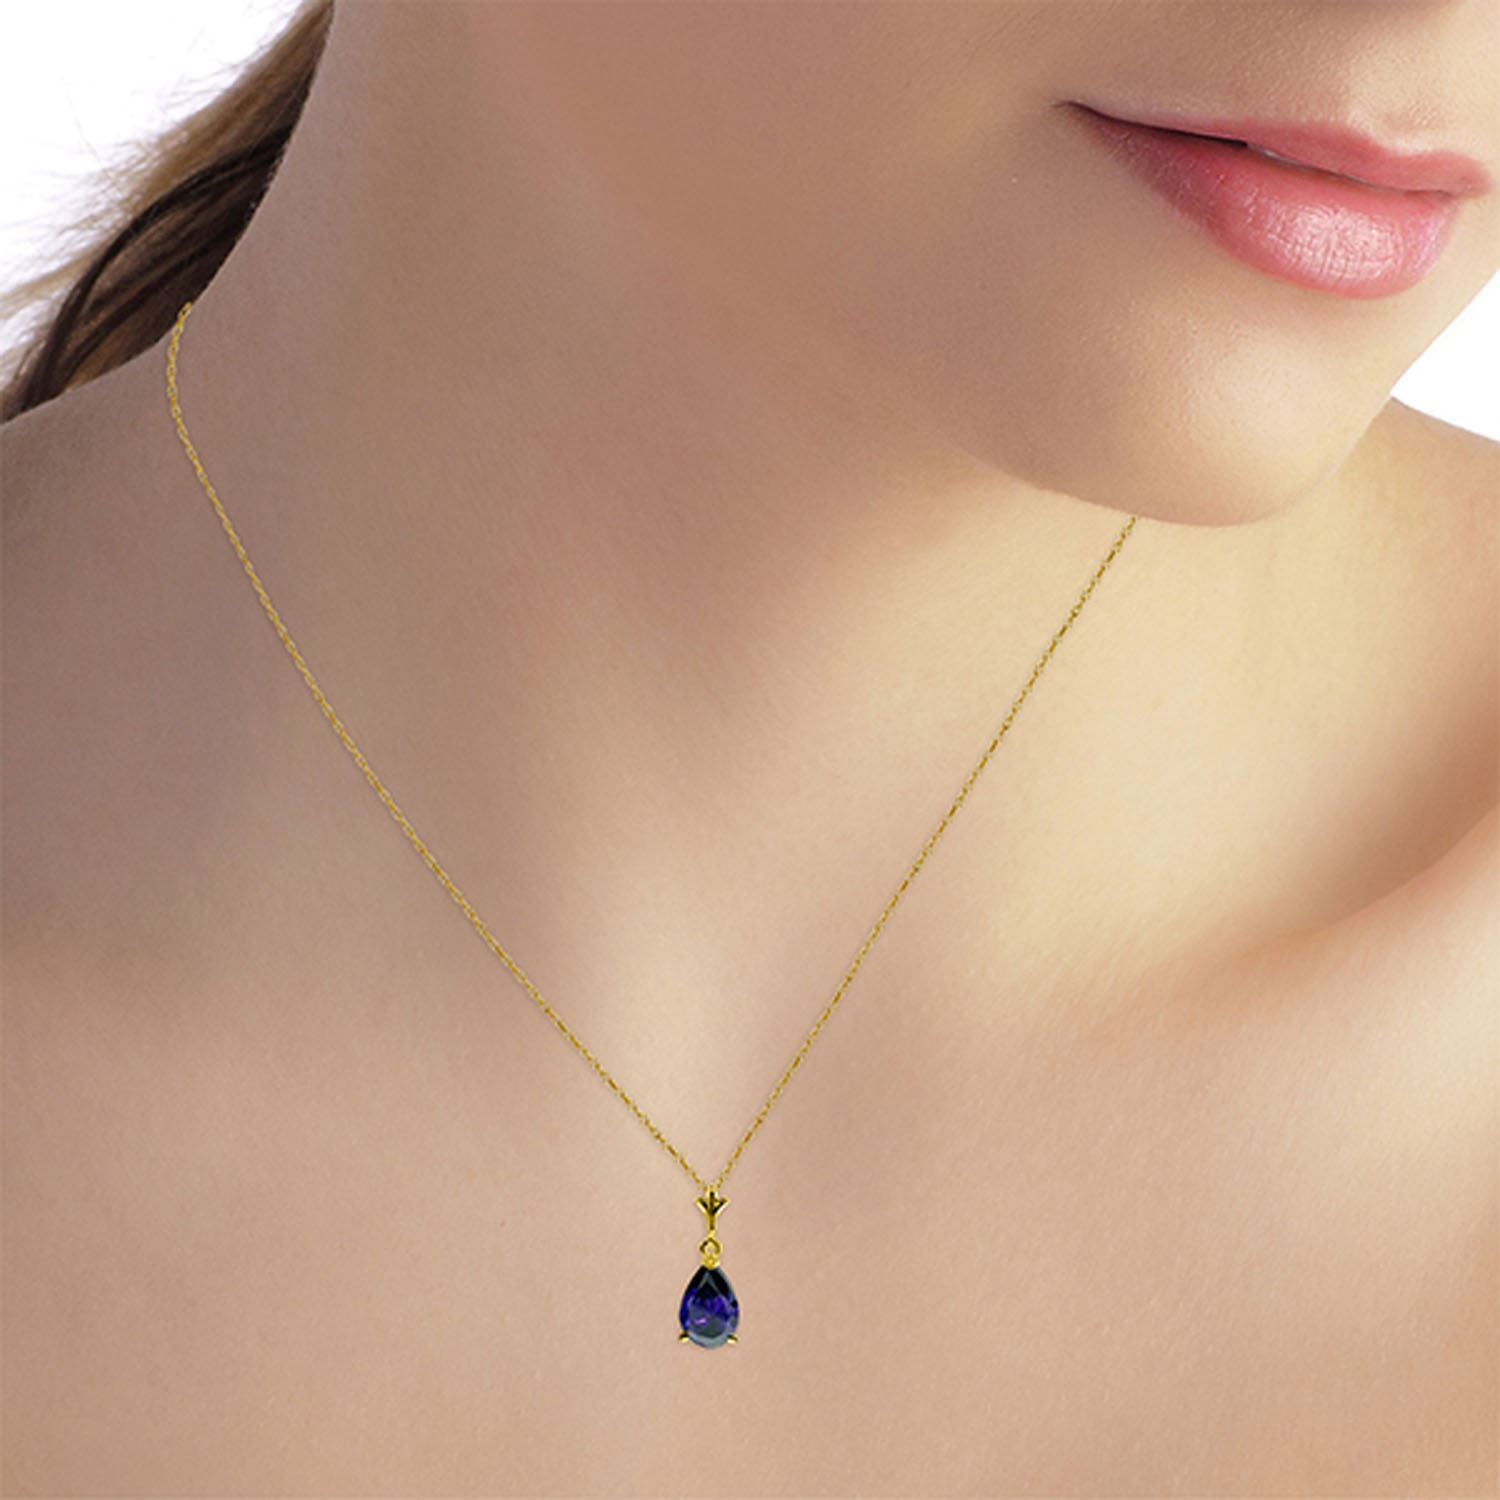 ALARRI 1.5 CTW 14K Solid Gold Necklace Natural Sapphire with 18 Inch Chain Length